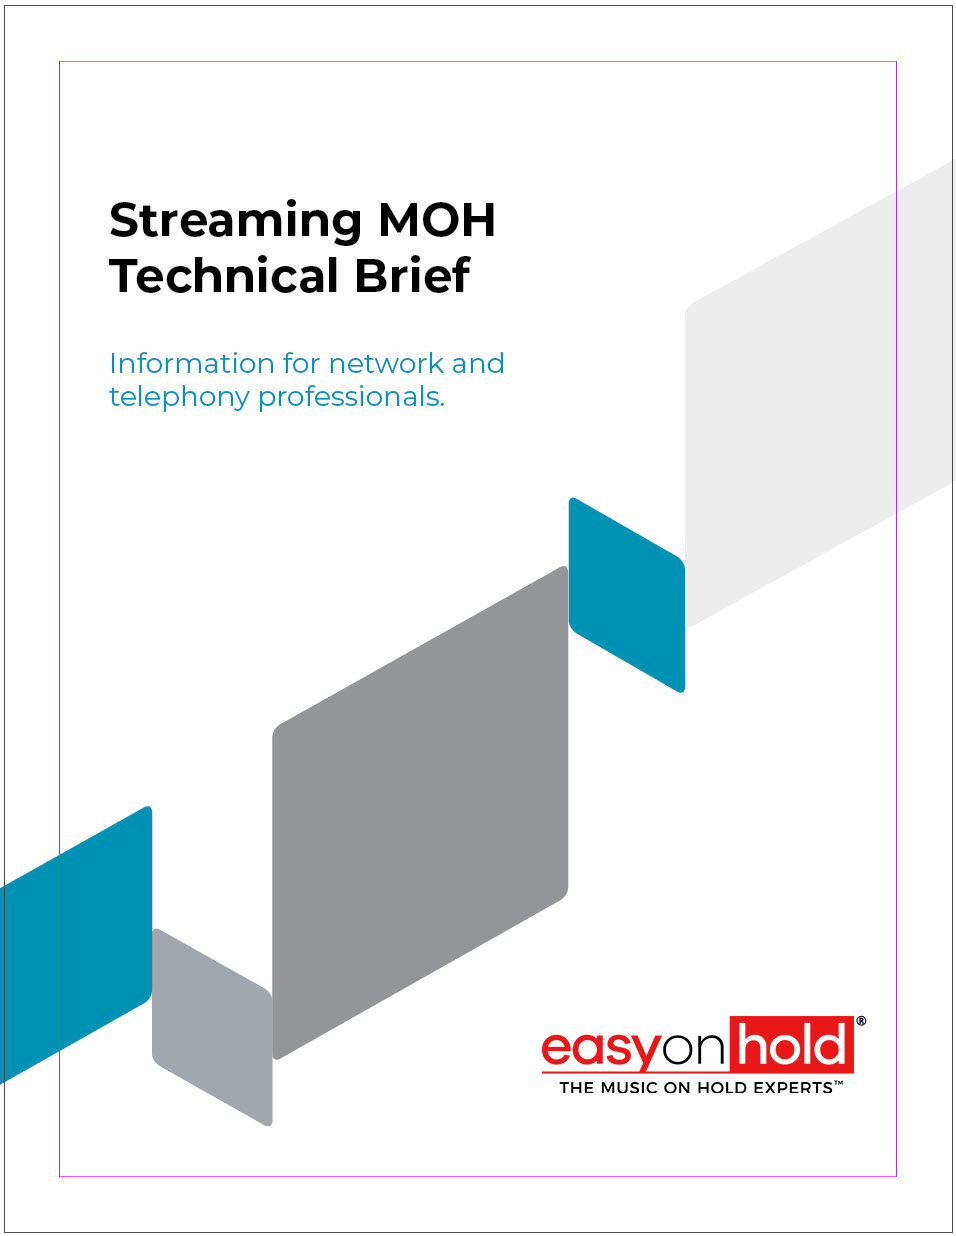 streaming music on hold technical brief cover image